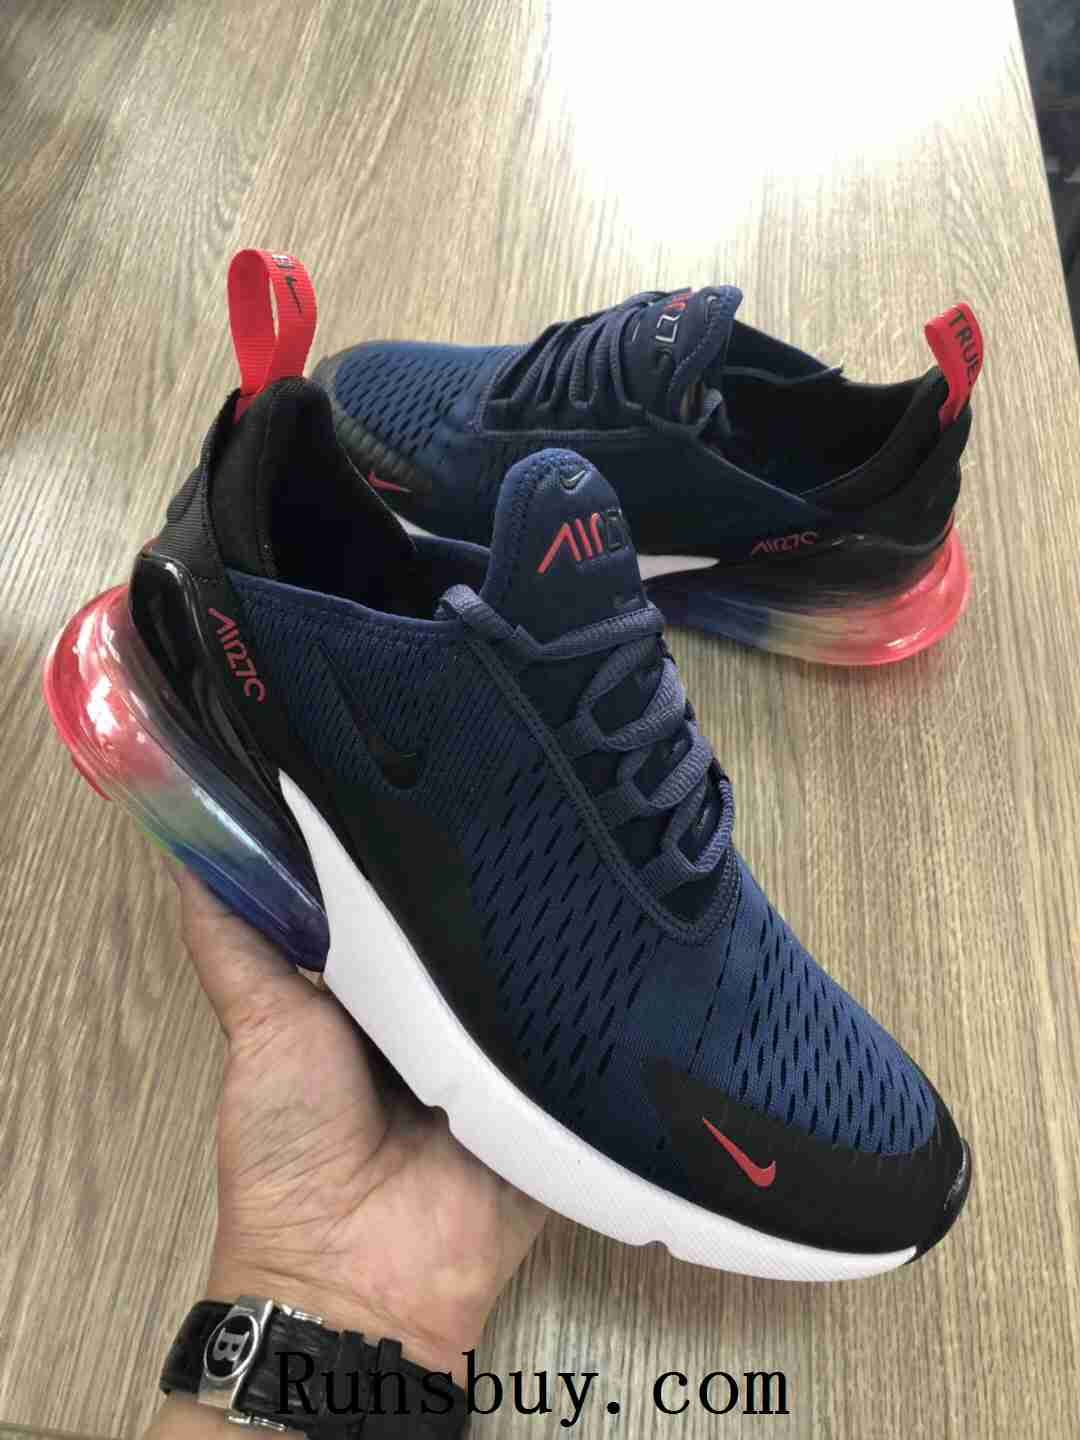 new styles 7d399 dd4f7 Nike Air Max 270 Betrue Blue Black Rainbow Women Men Running Shoes